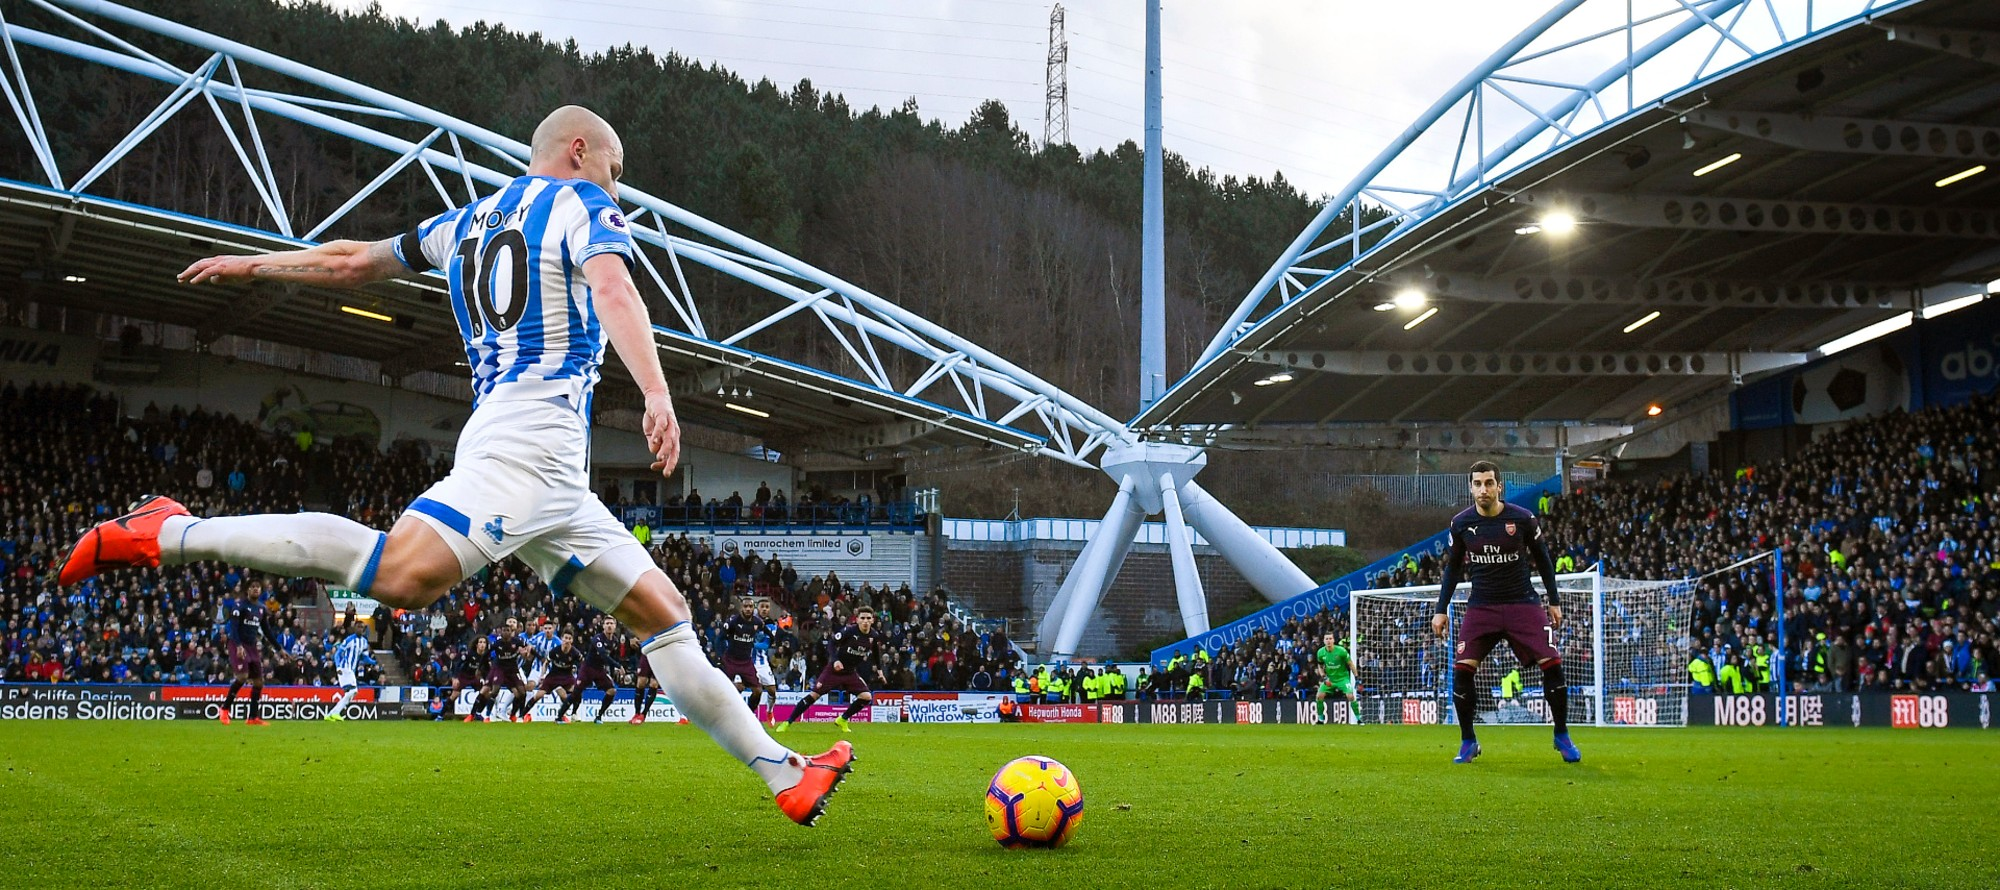 Mooy learns who he'll face in the Championship's opening round